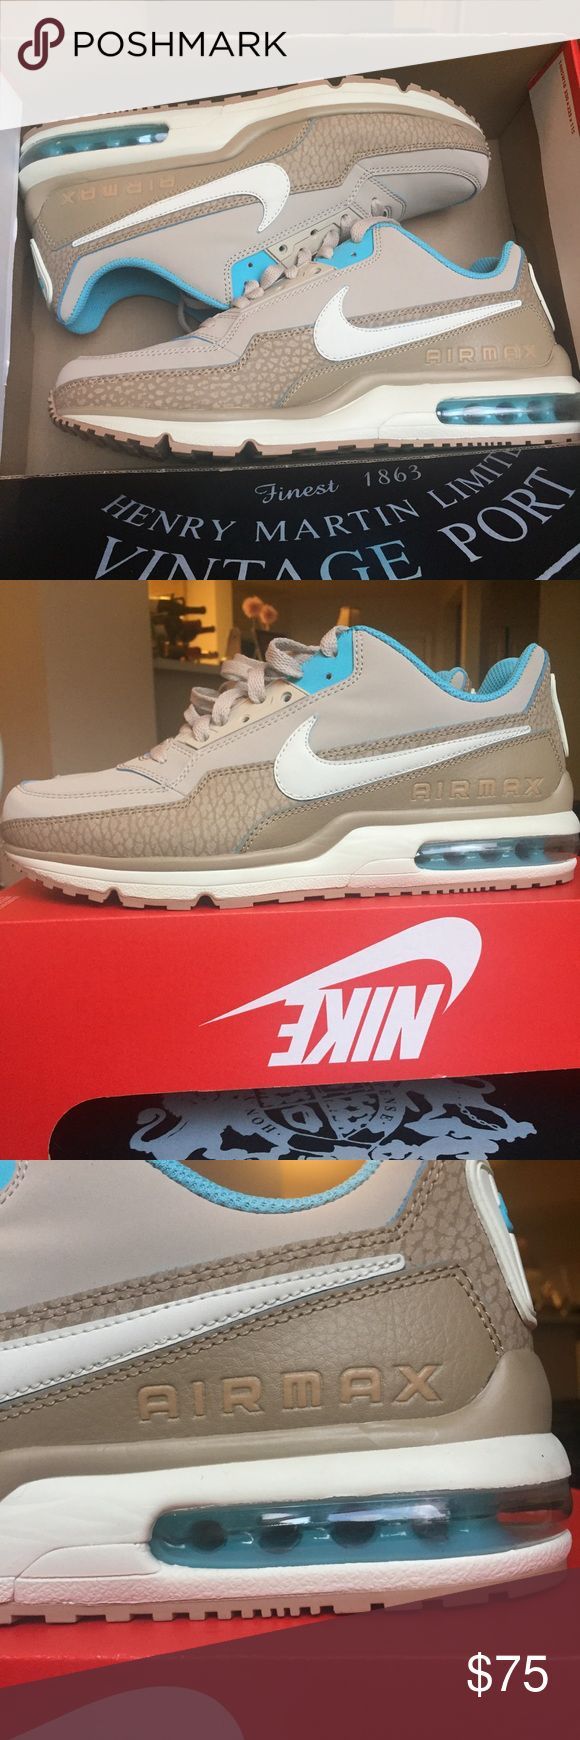 Men's Nike Air Max LTD 3 Premium Running Shoes New Men's Nike Air Max Ltd premium running shoe in size 9.5. Clean shoe and classic look. Nike Shoes Sneakers